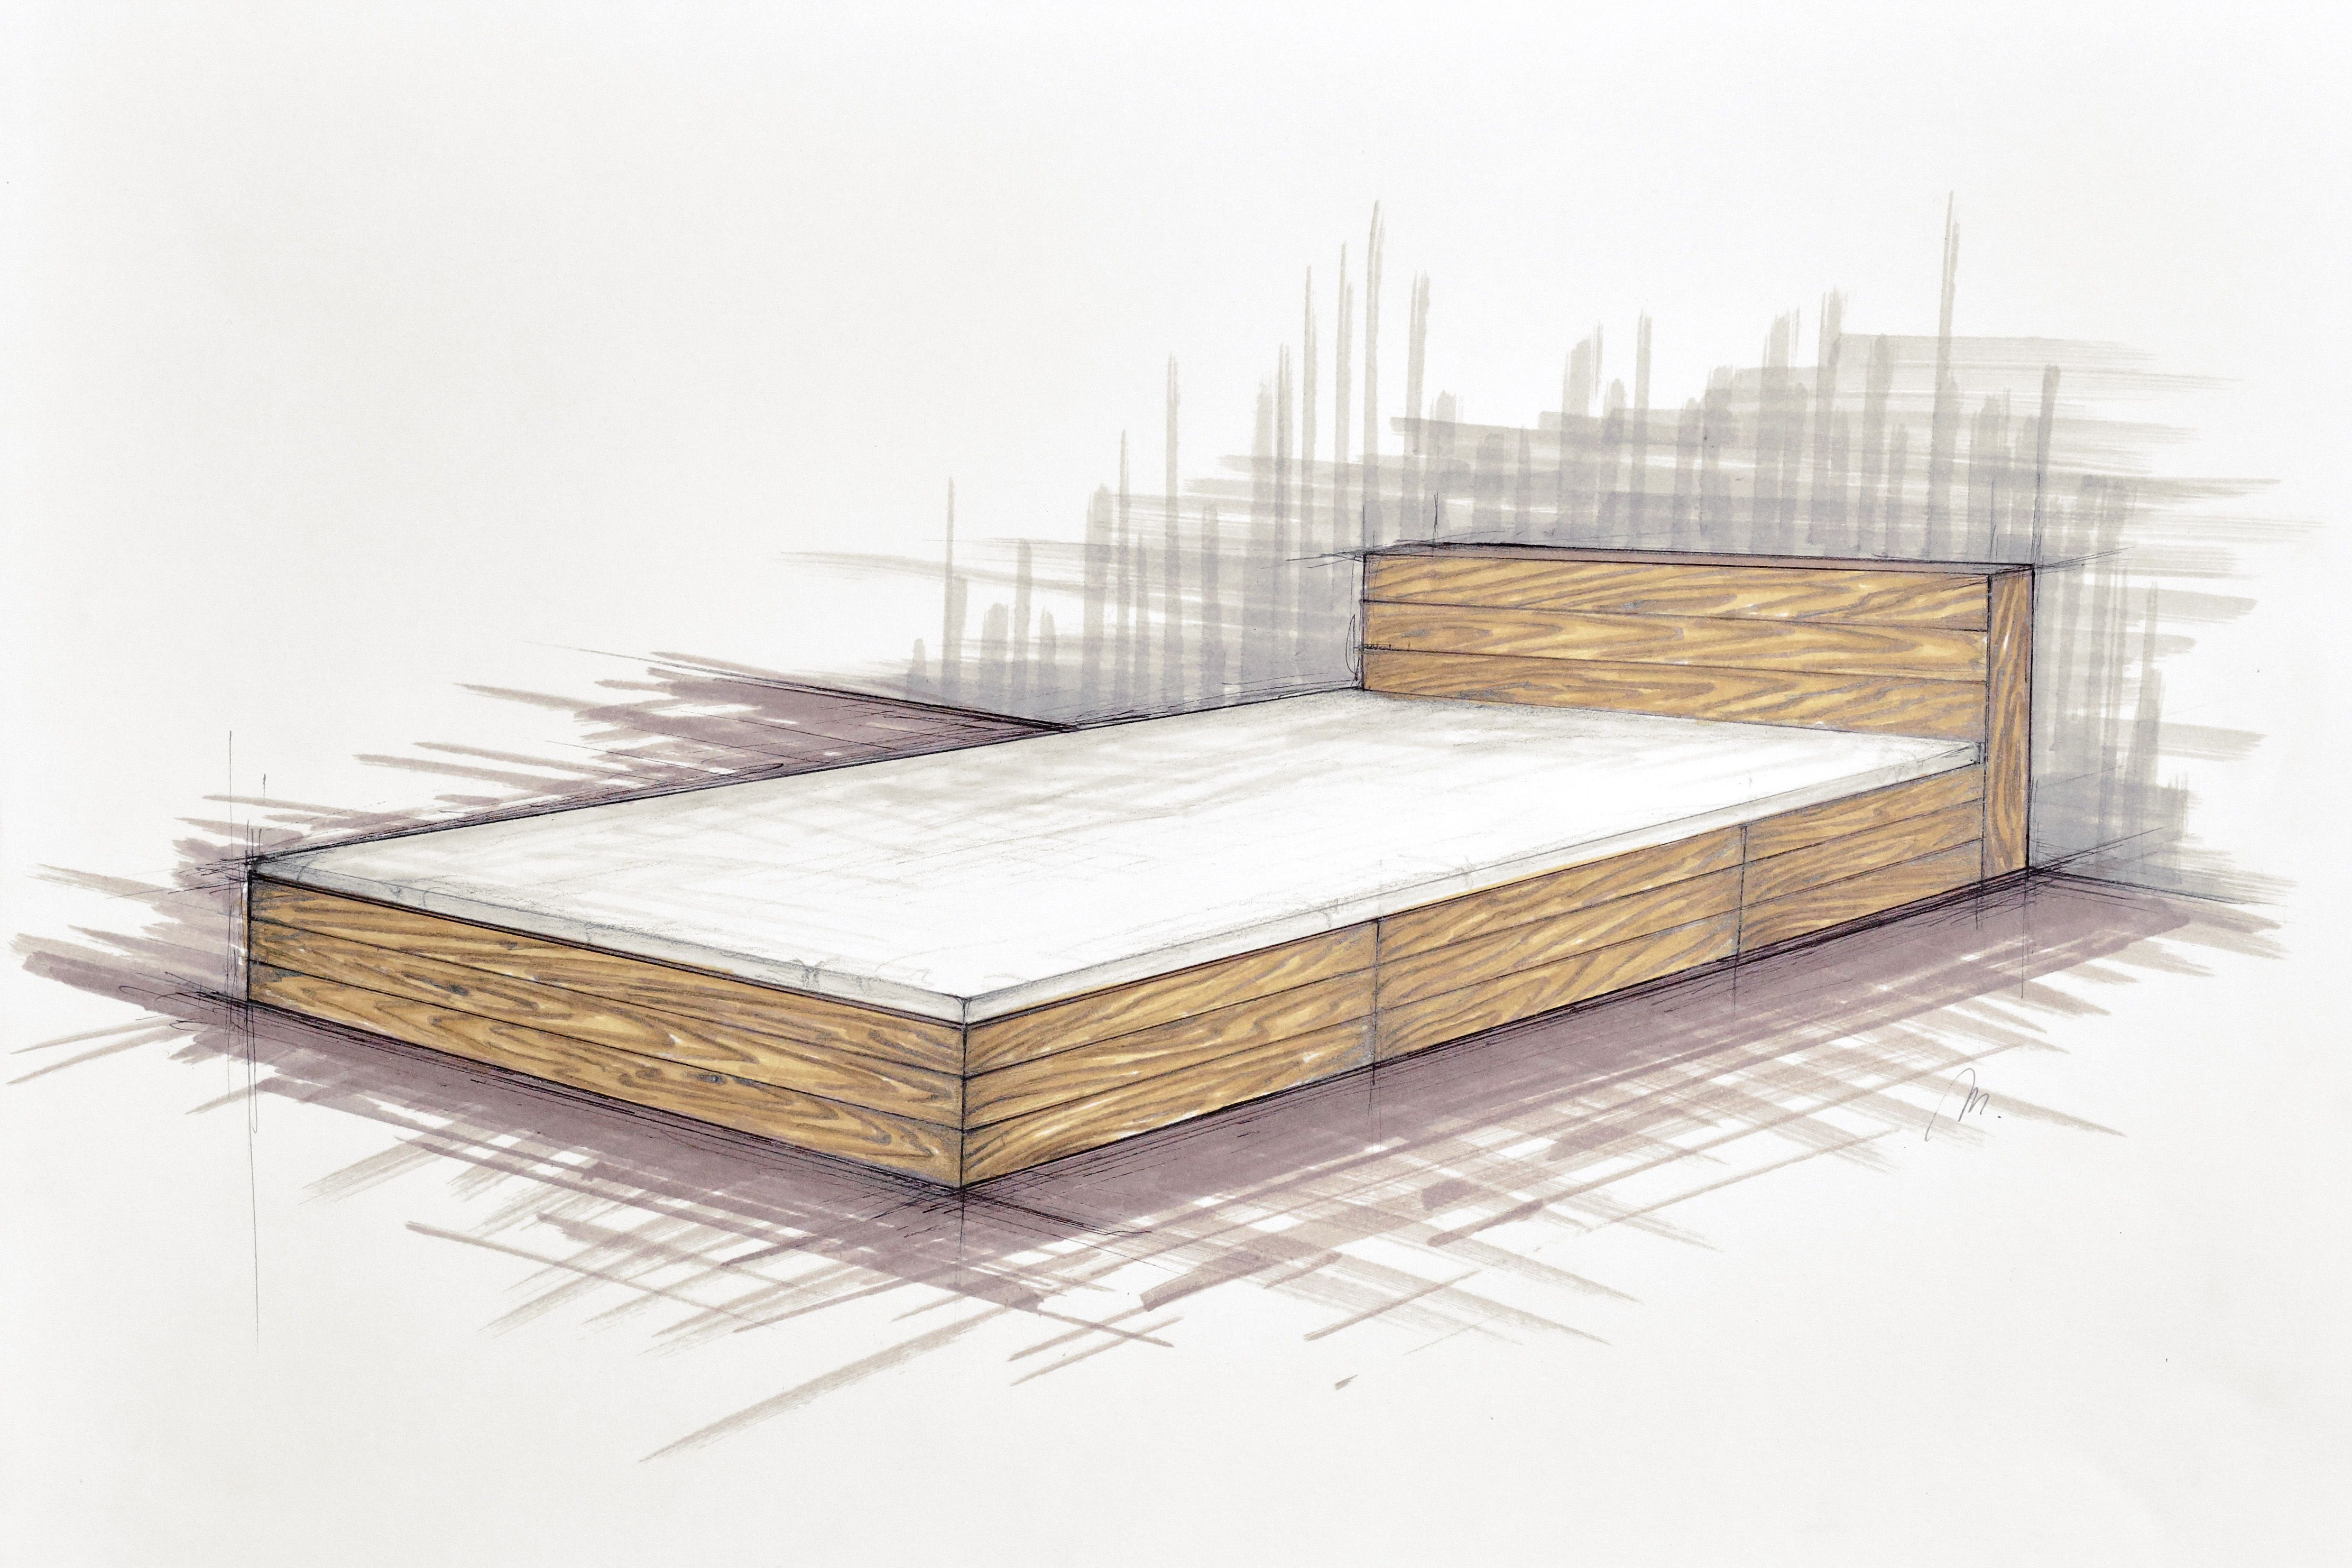 Handcrafted bespoke wooden bed. Old wood. Modern, rustic, simple ...